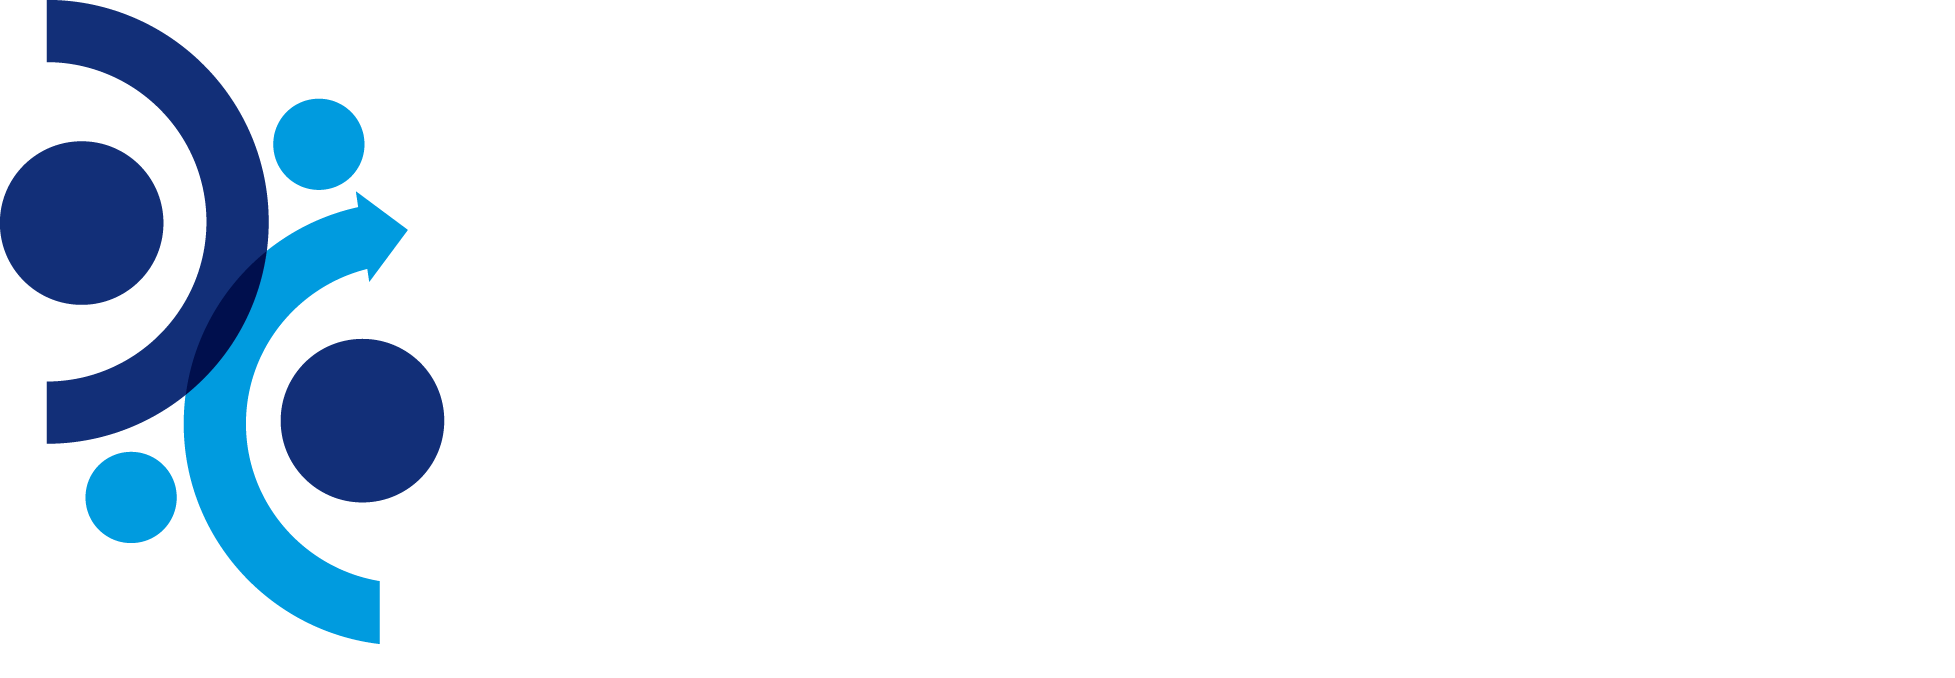 Change for Impact